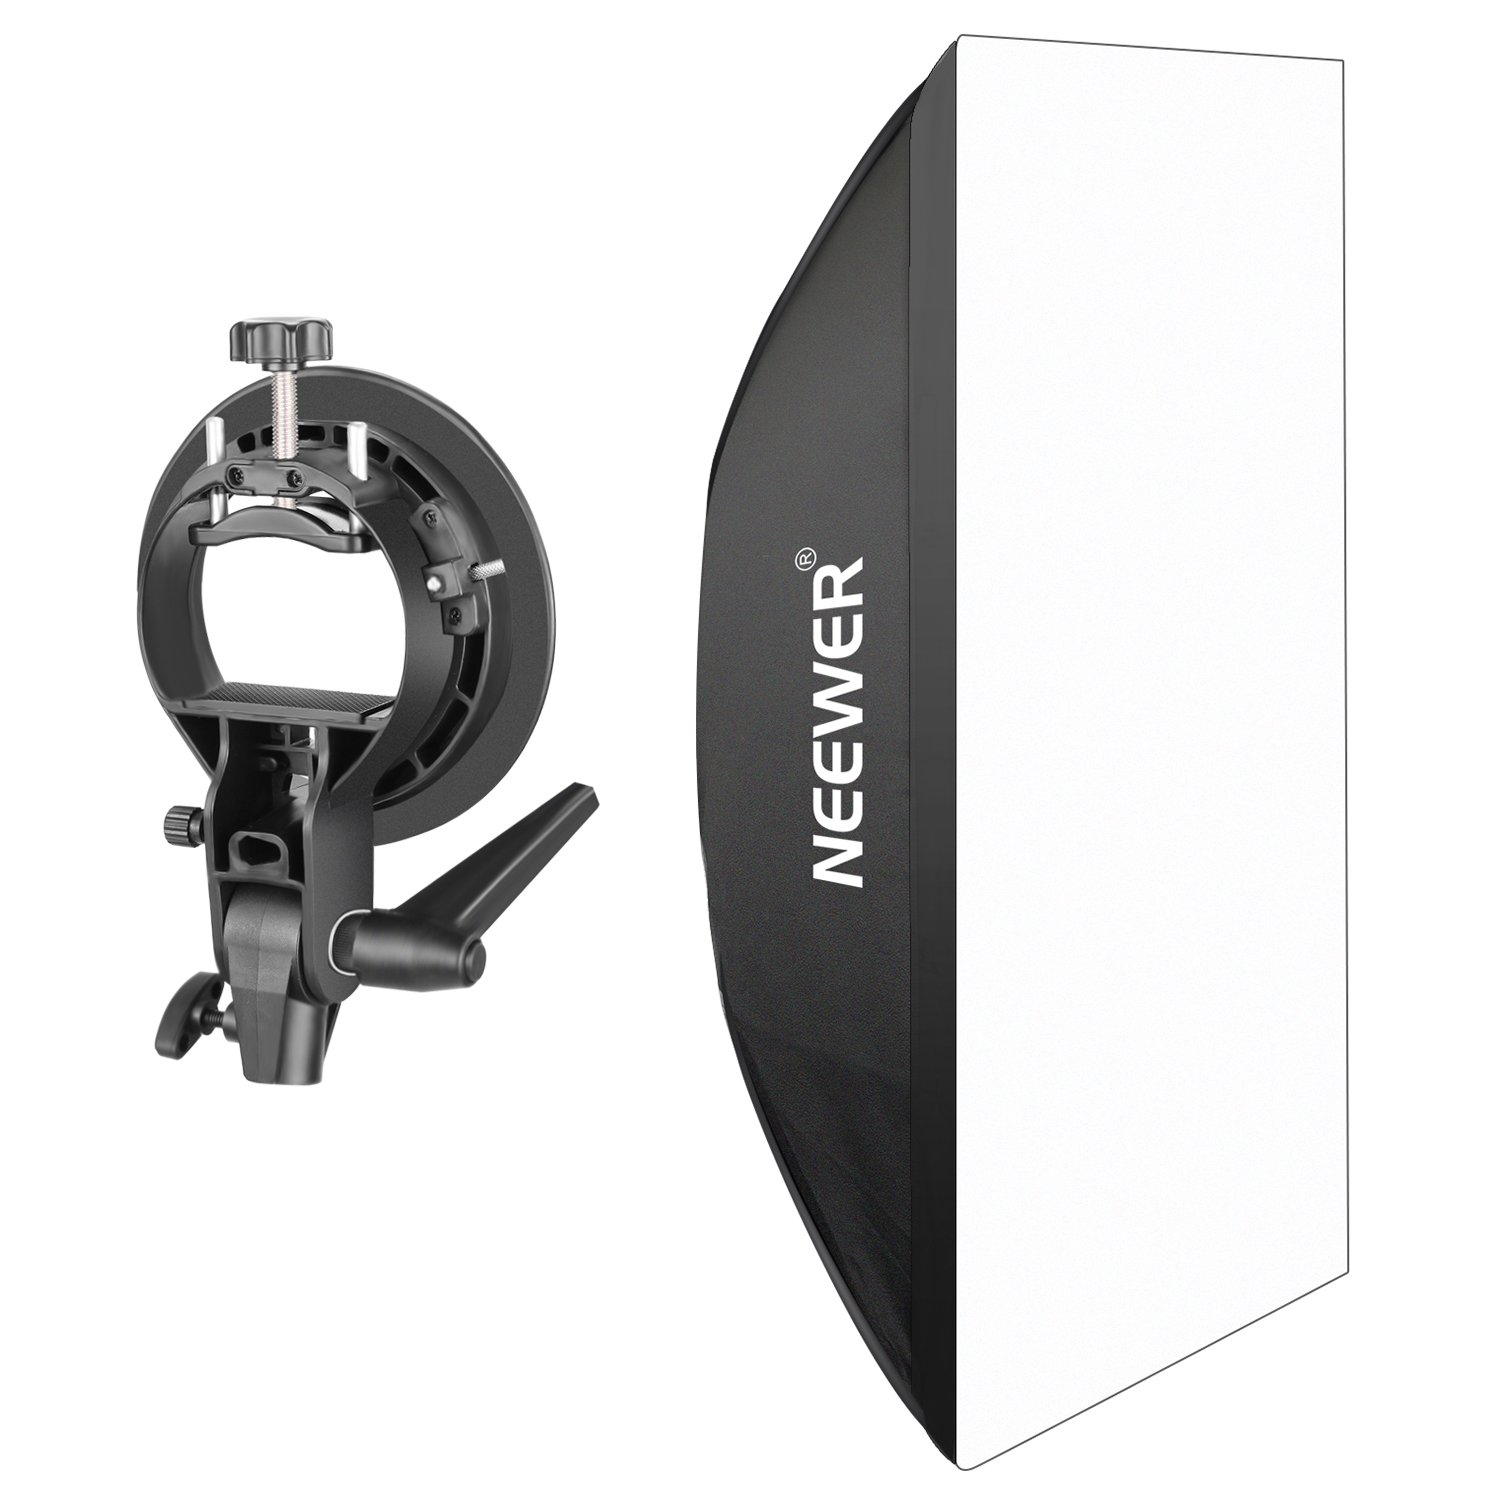 Neewer Portable 24 x 36 inches/60 x 90 centimeters Rectangular Softbox with Bowens Mount and S-Type Bracket Holder Kit for Speedlite Studio Flash Monolight,Portrait and Product Photography by Neewer